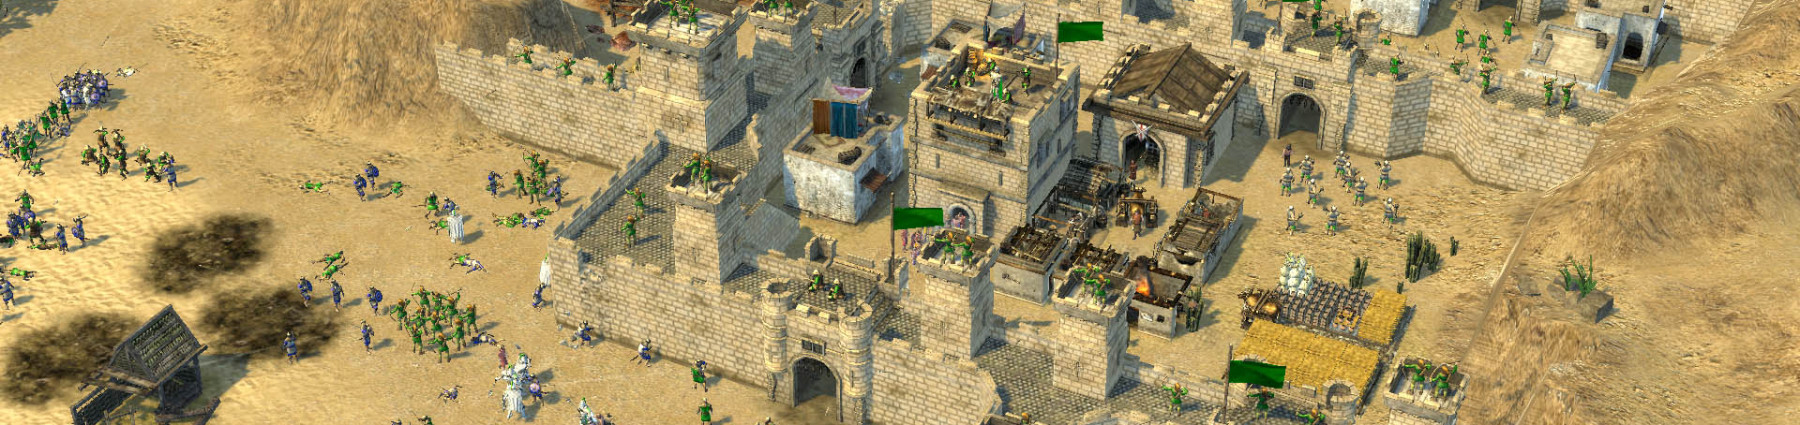 stronghold 2 deluxe crack 1.4  google